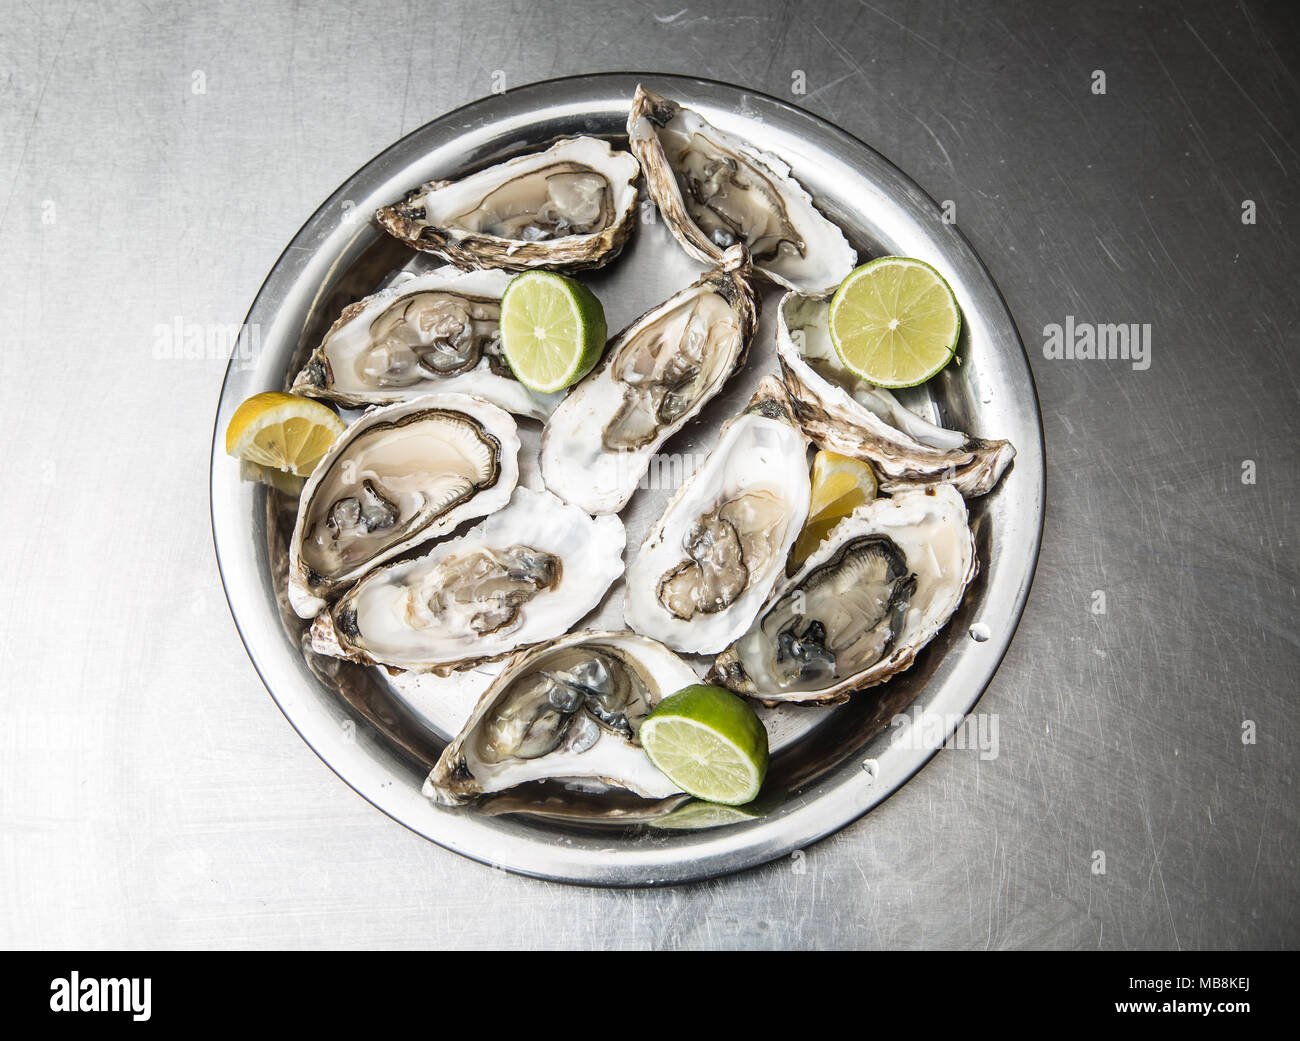 Several open oysters with lemon and lime. - Stock Image